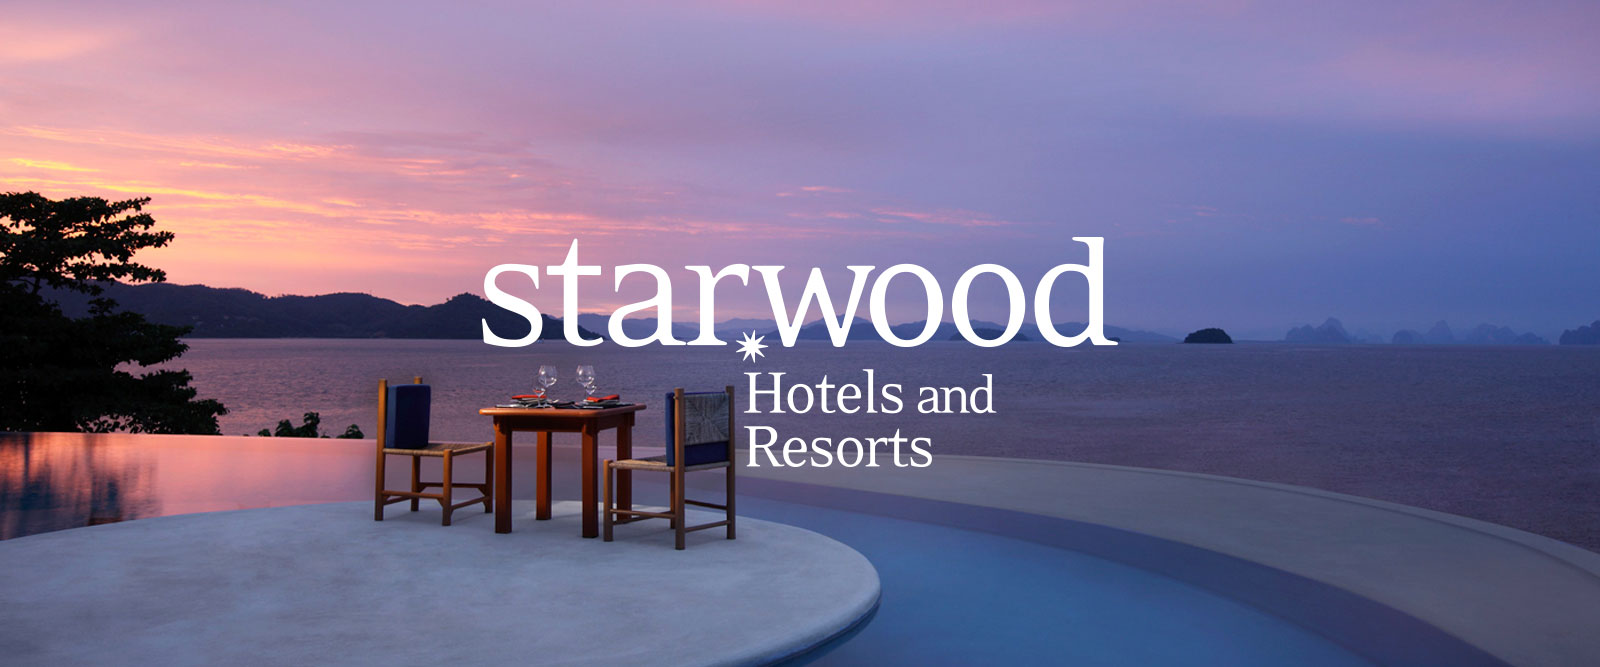 Starwood Hotels And Resorts Viagra